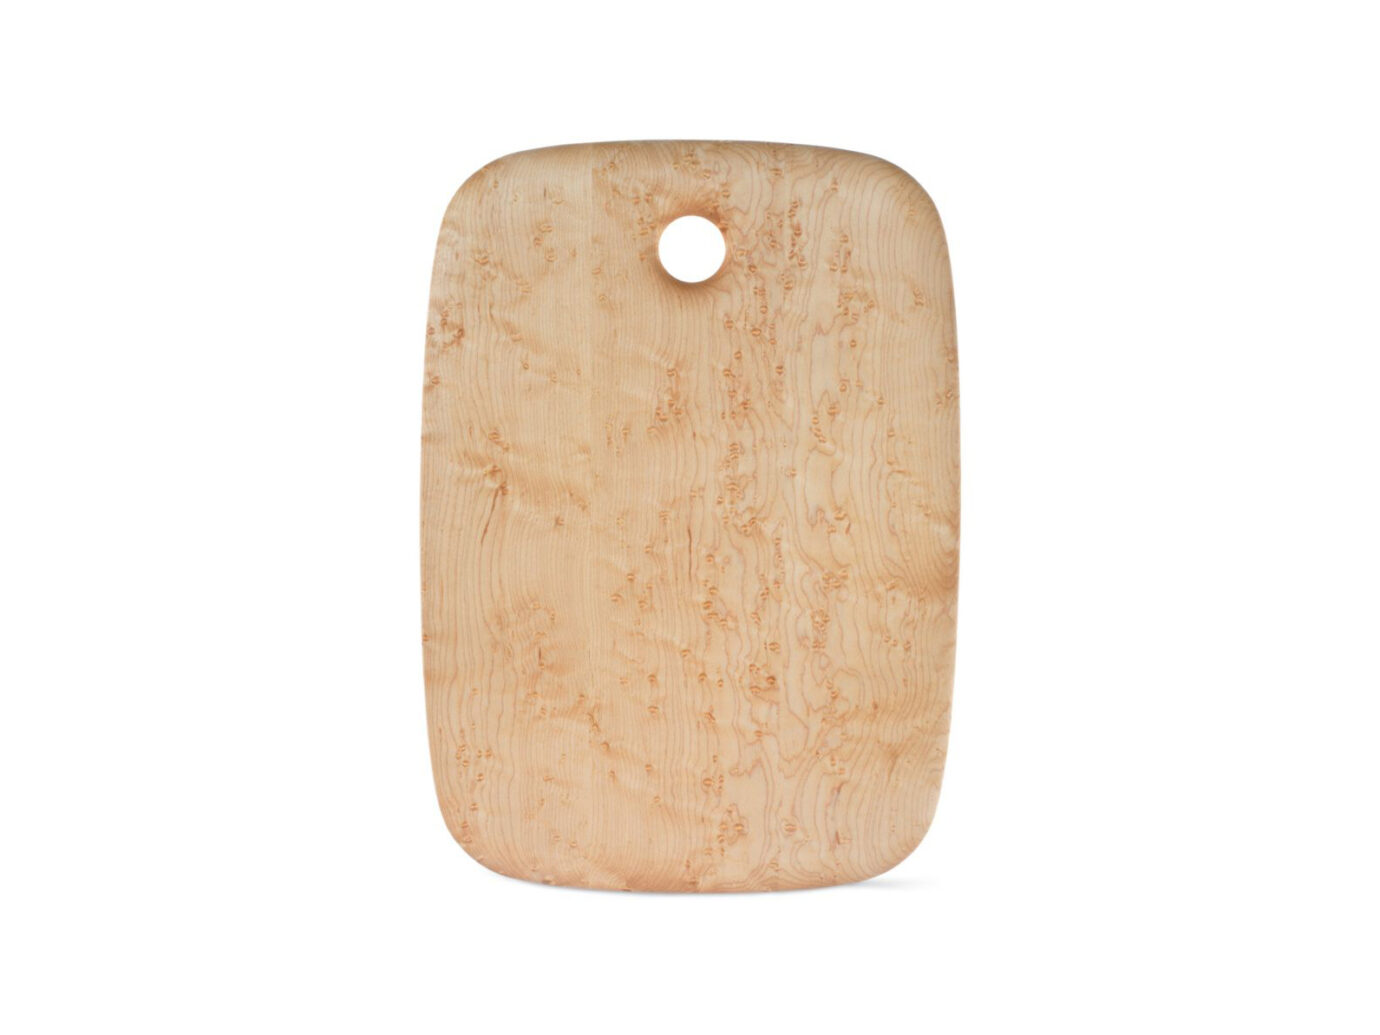 Edward Wohl Cutting board